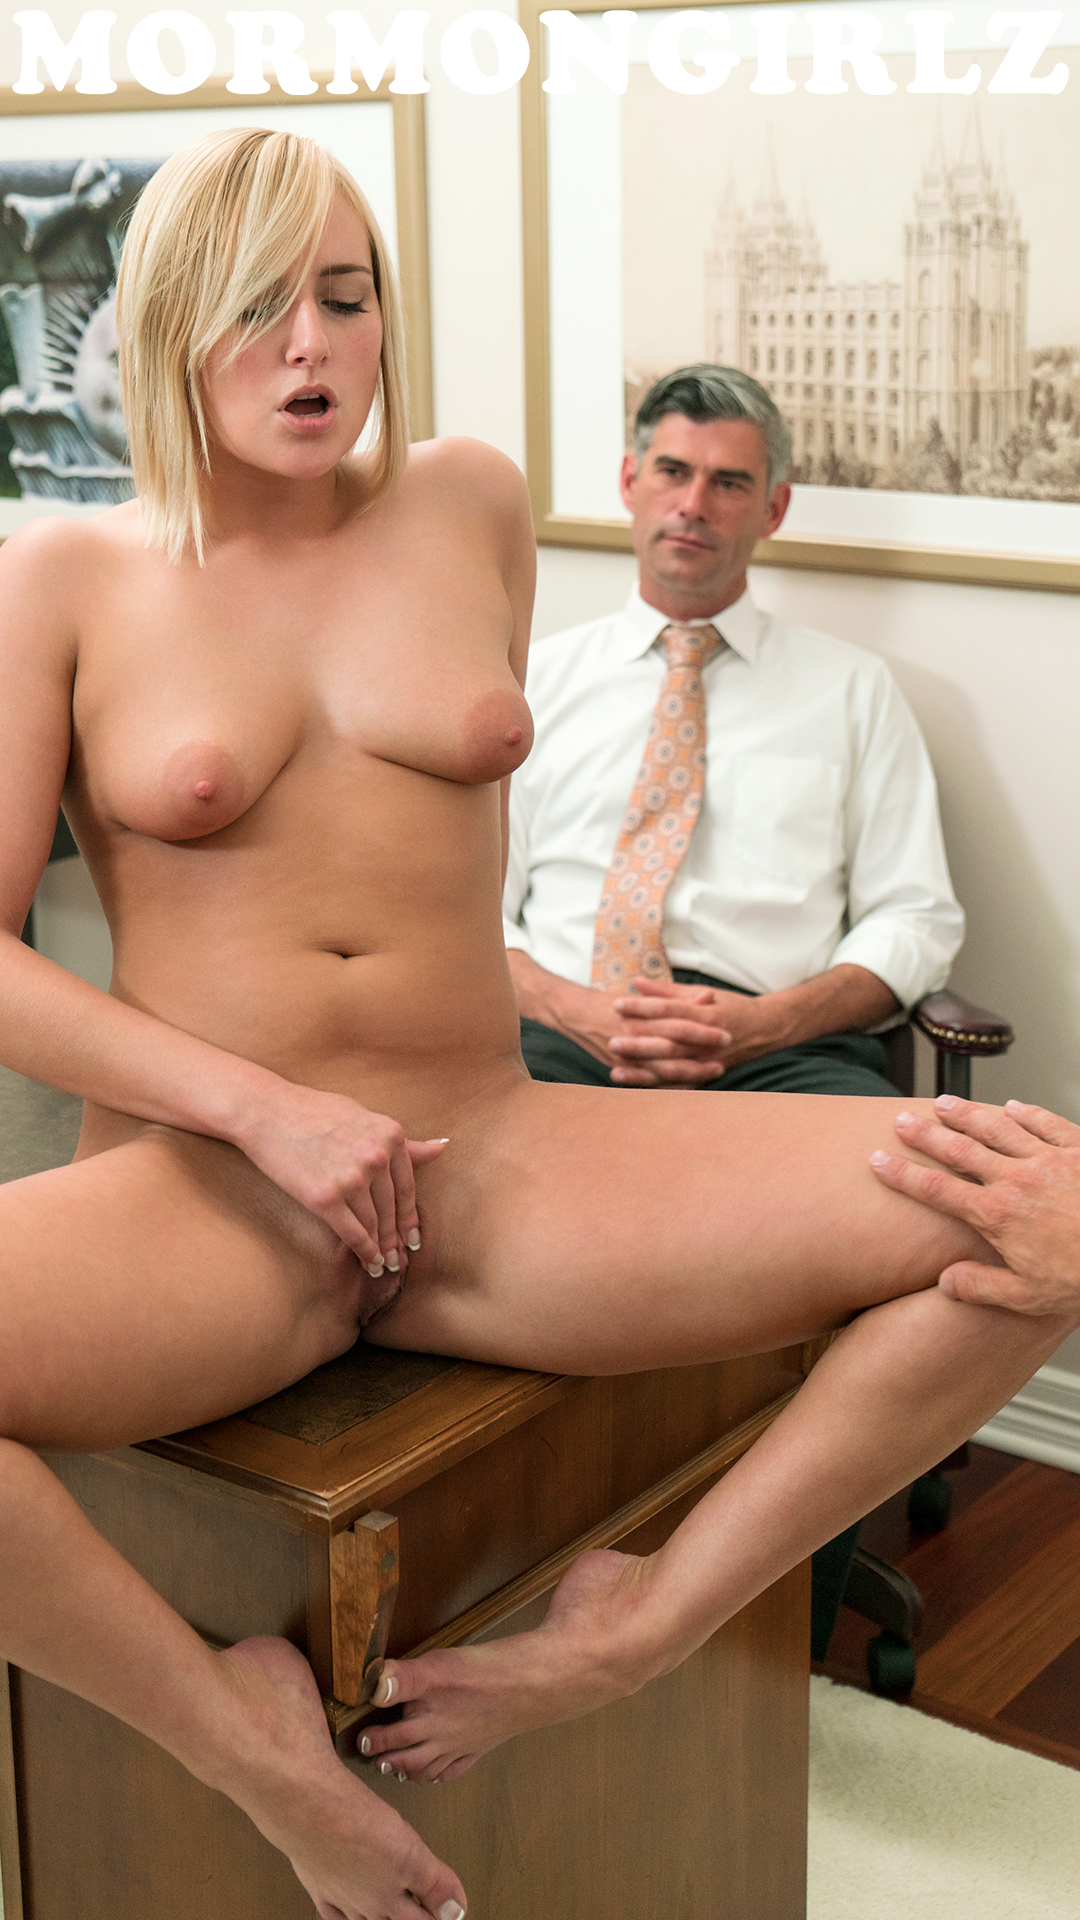 pearl gets her tiny virgin mumu examined by father ludacris #1